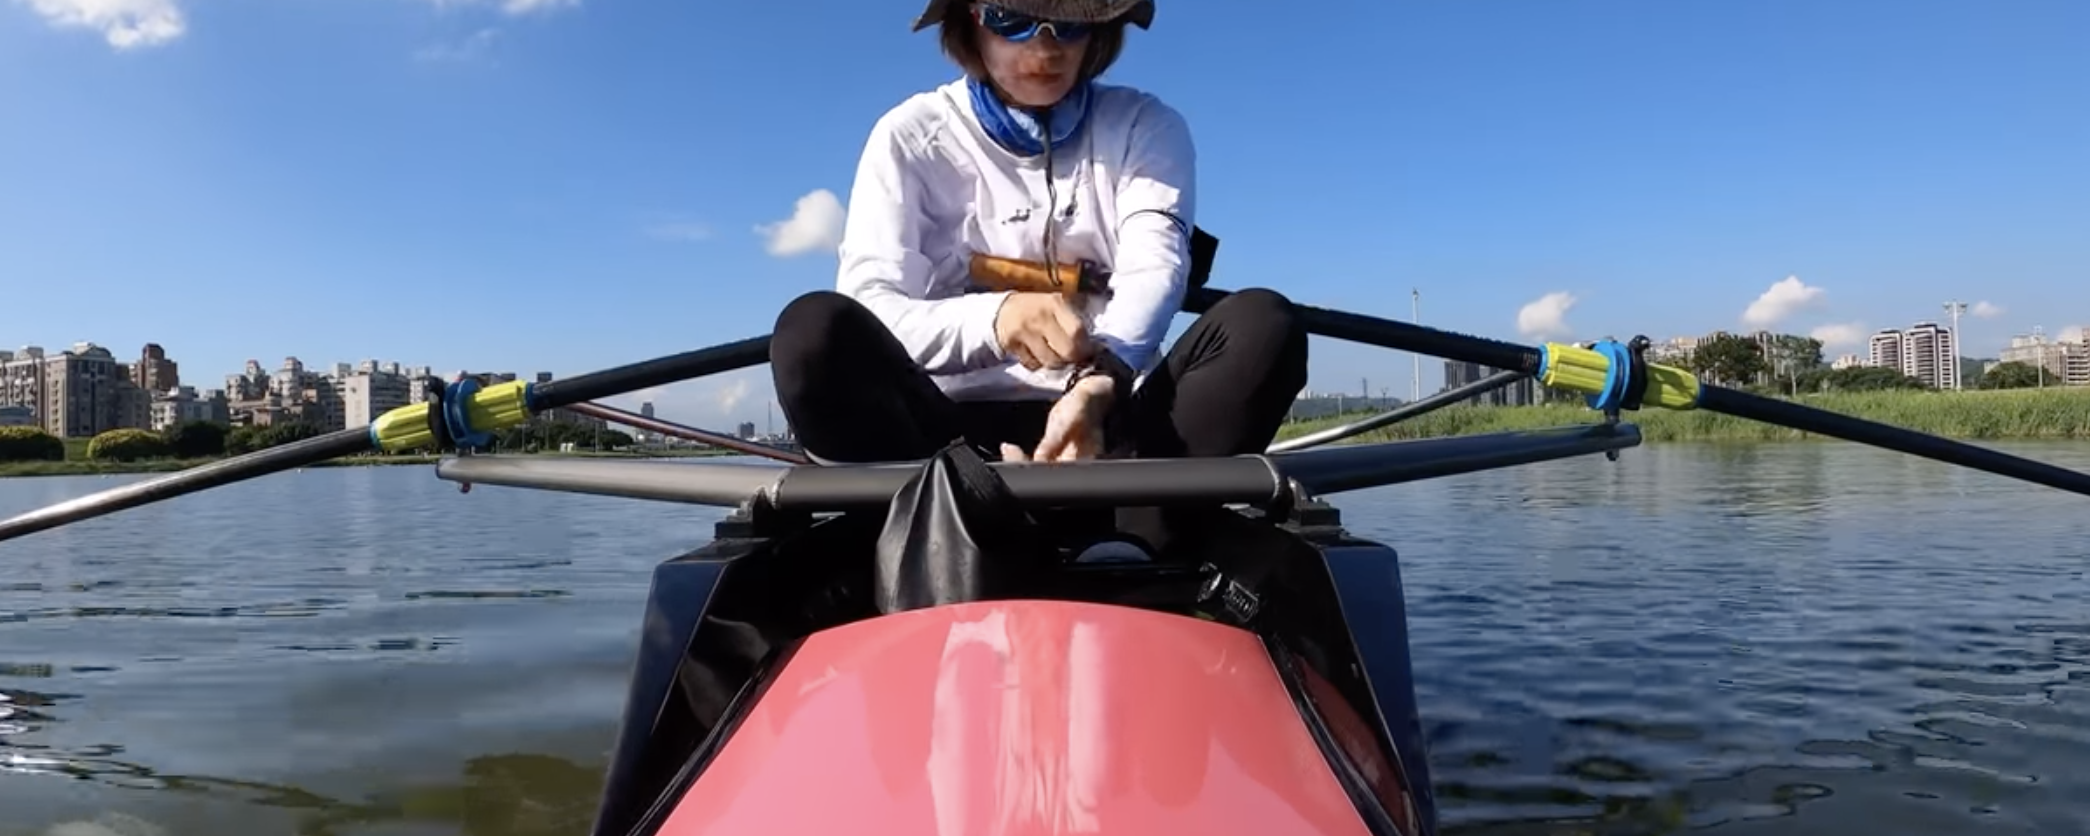 Impostor Syndrome in rowing